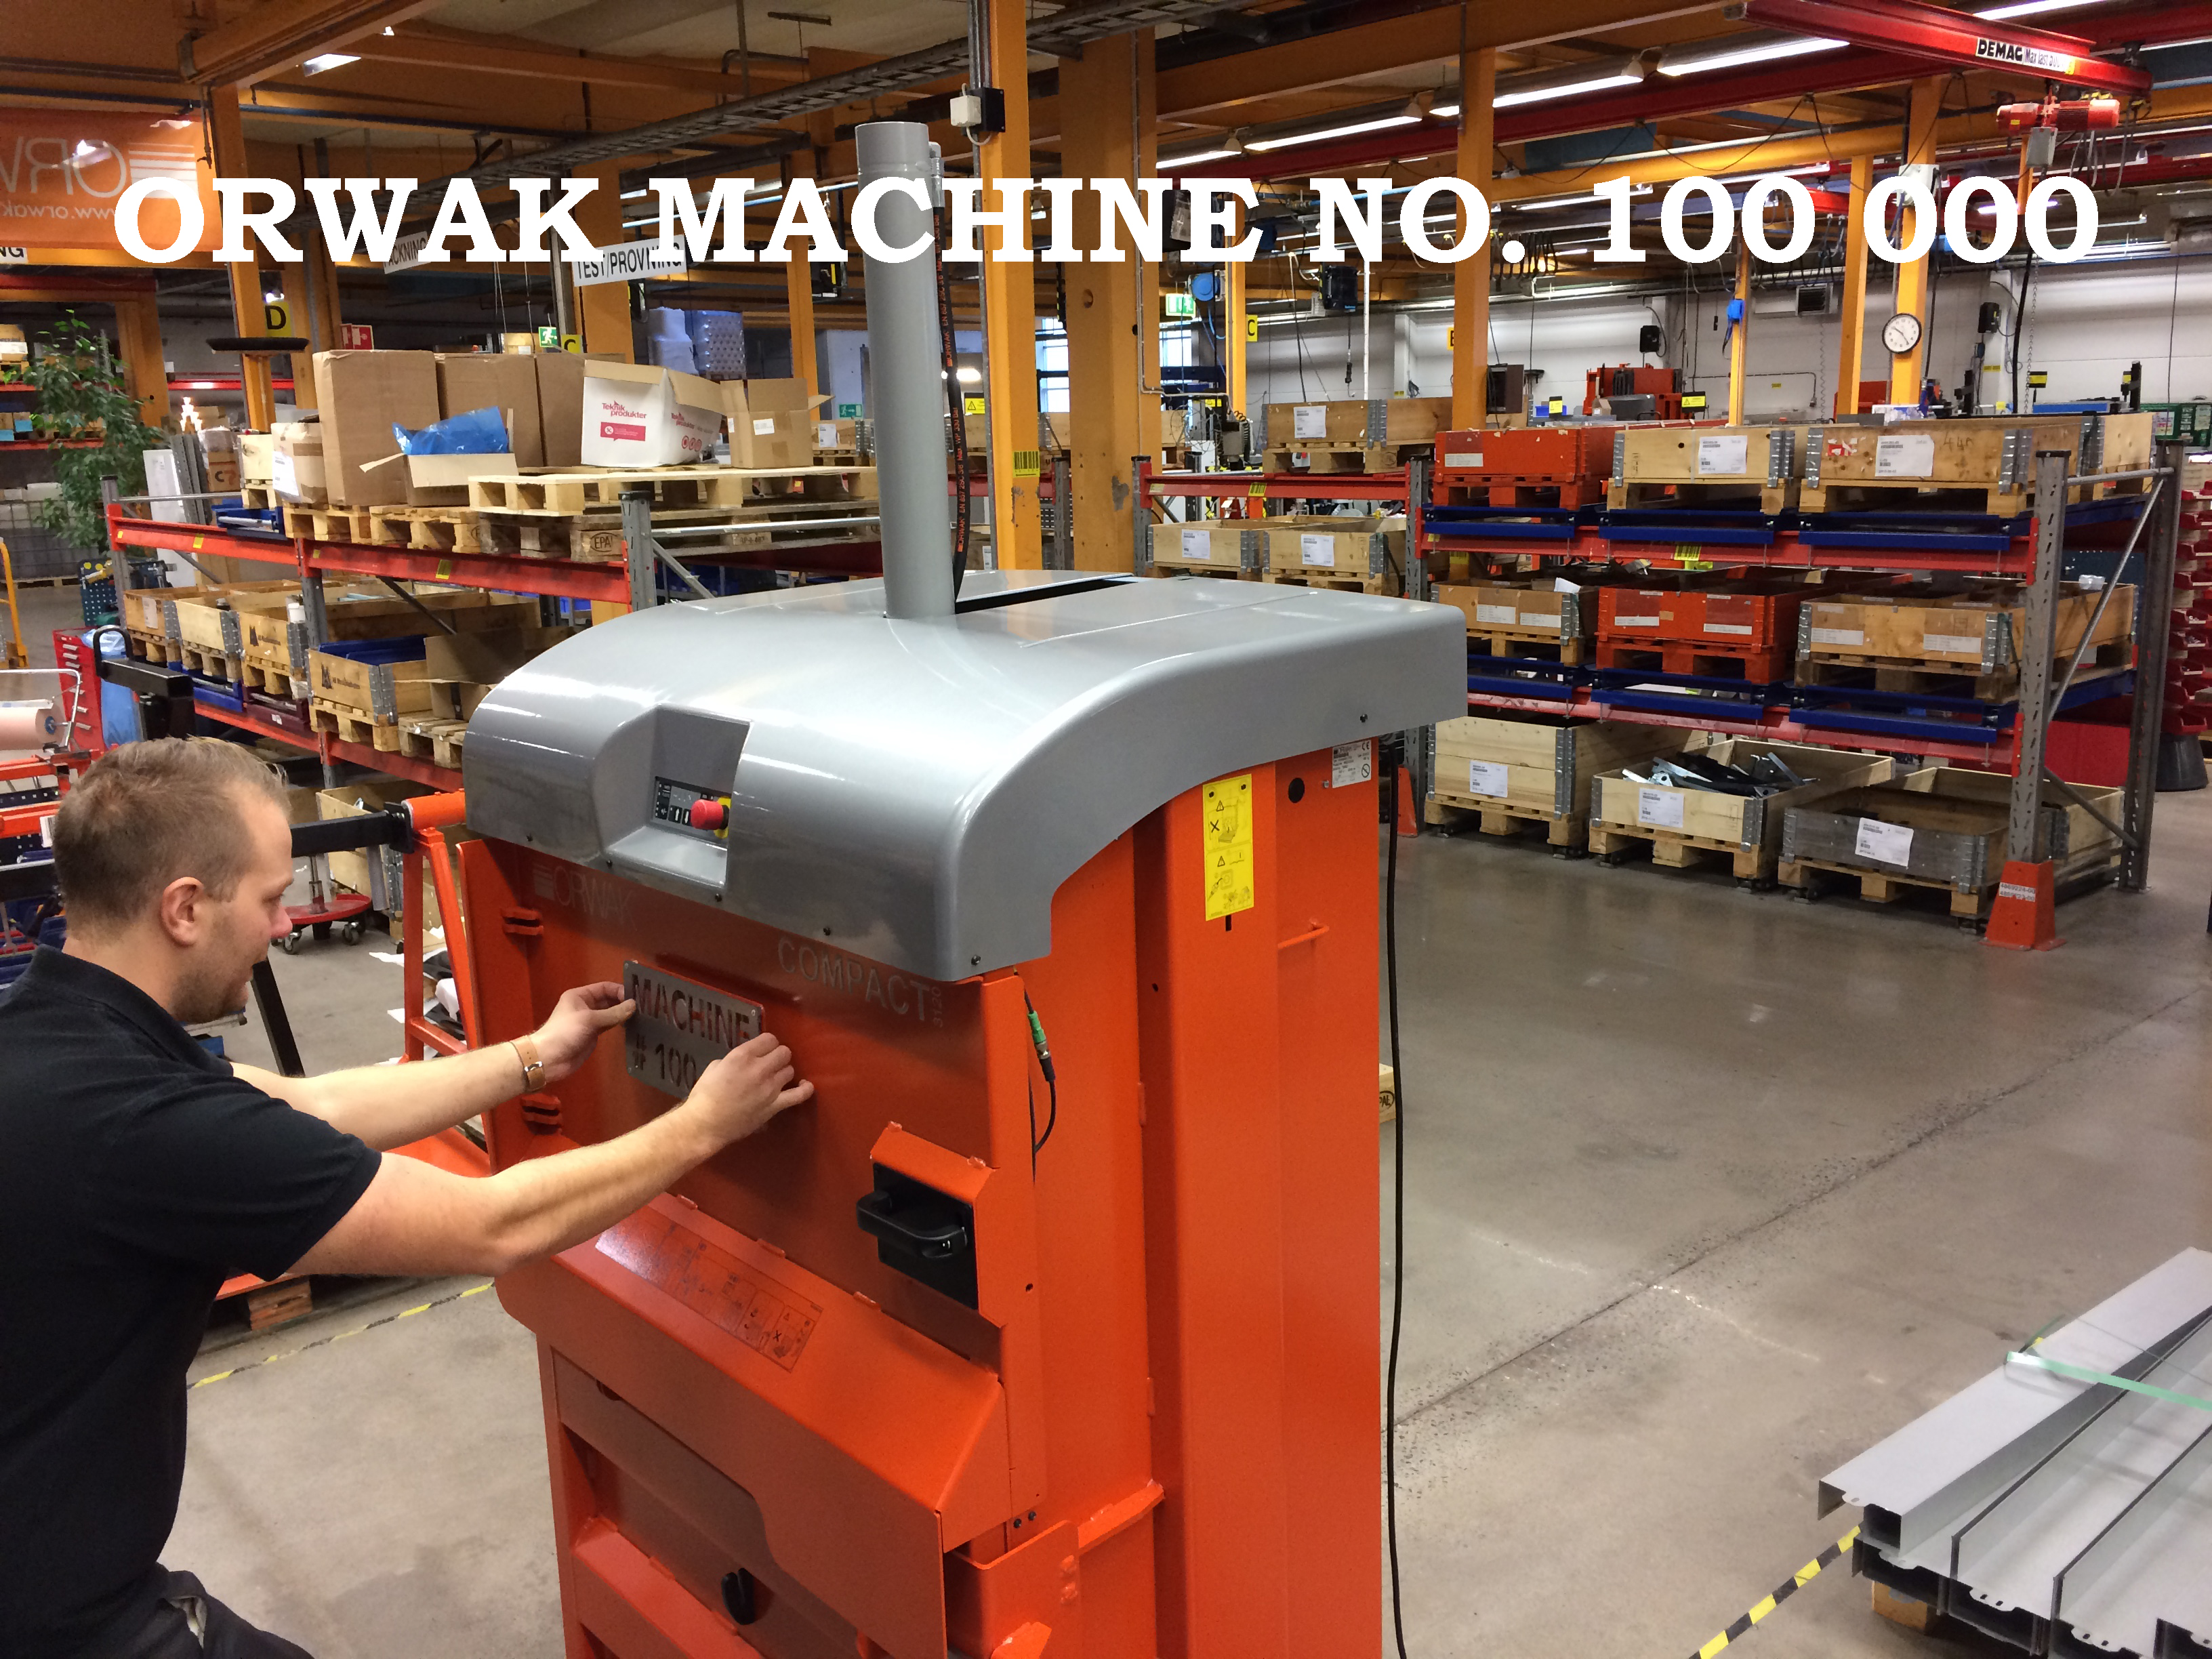 Machine no 100 000 being born text